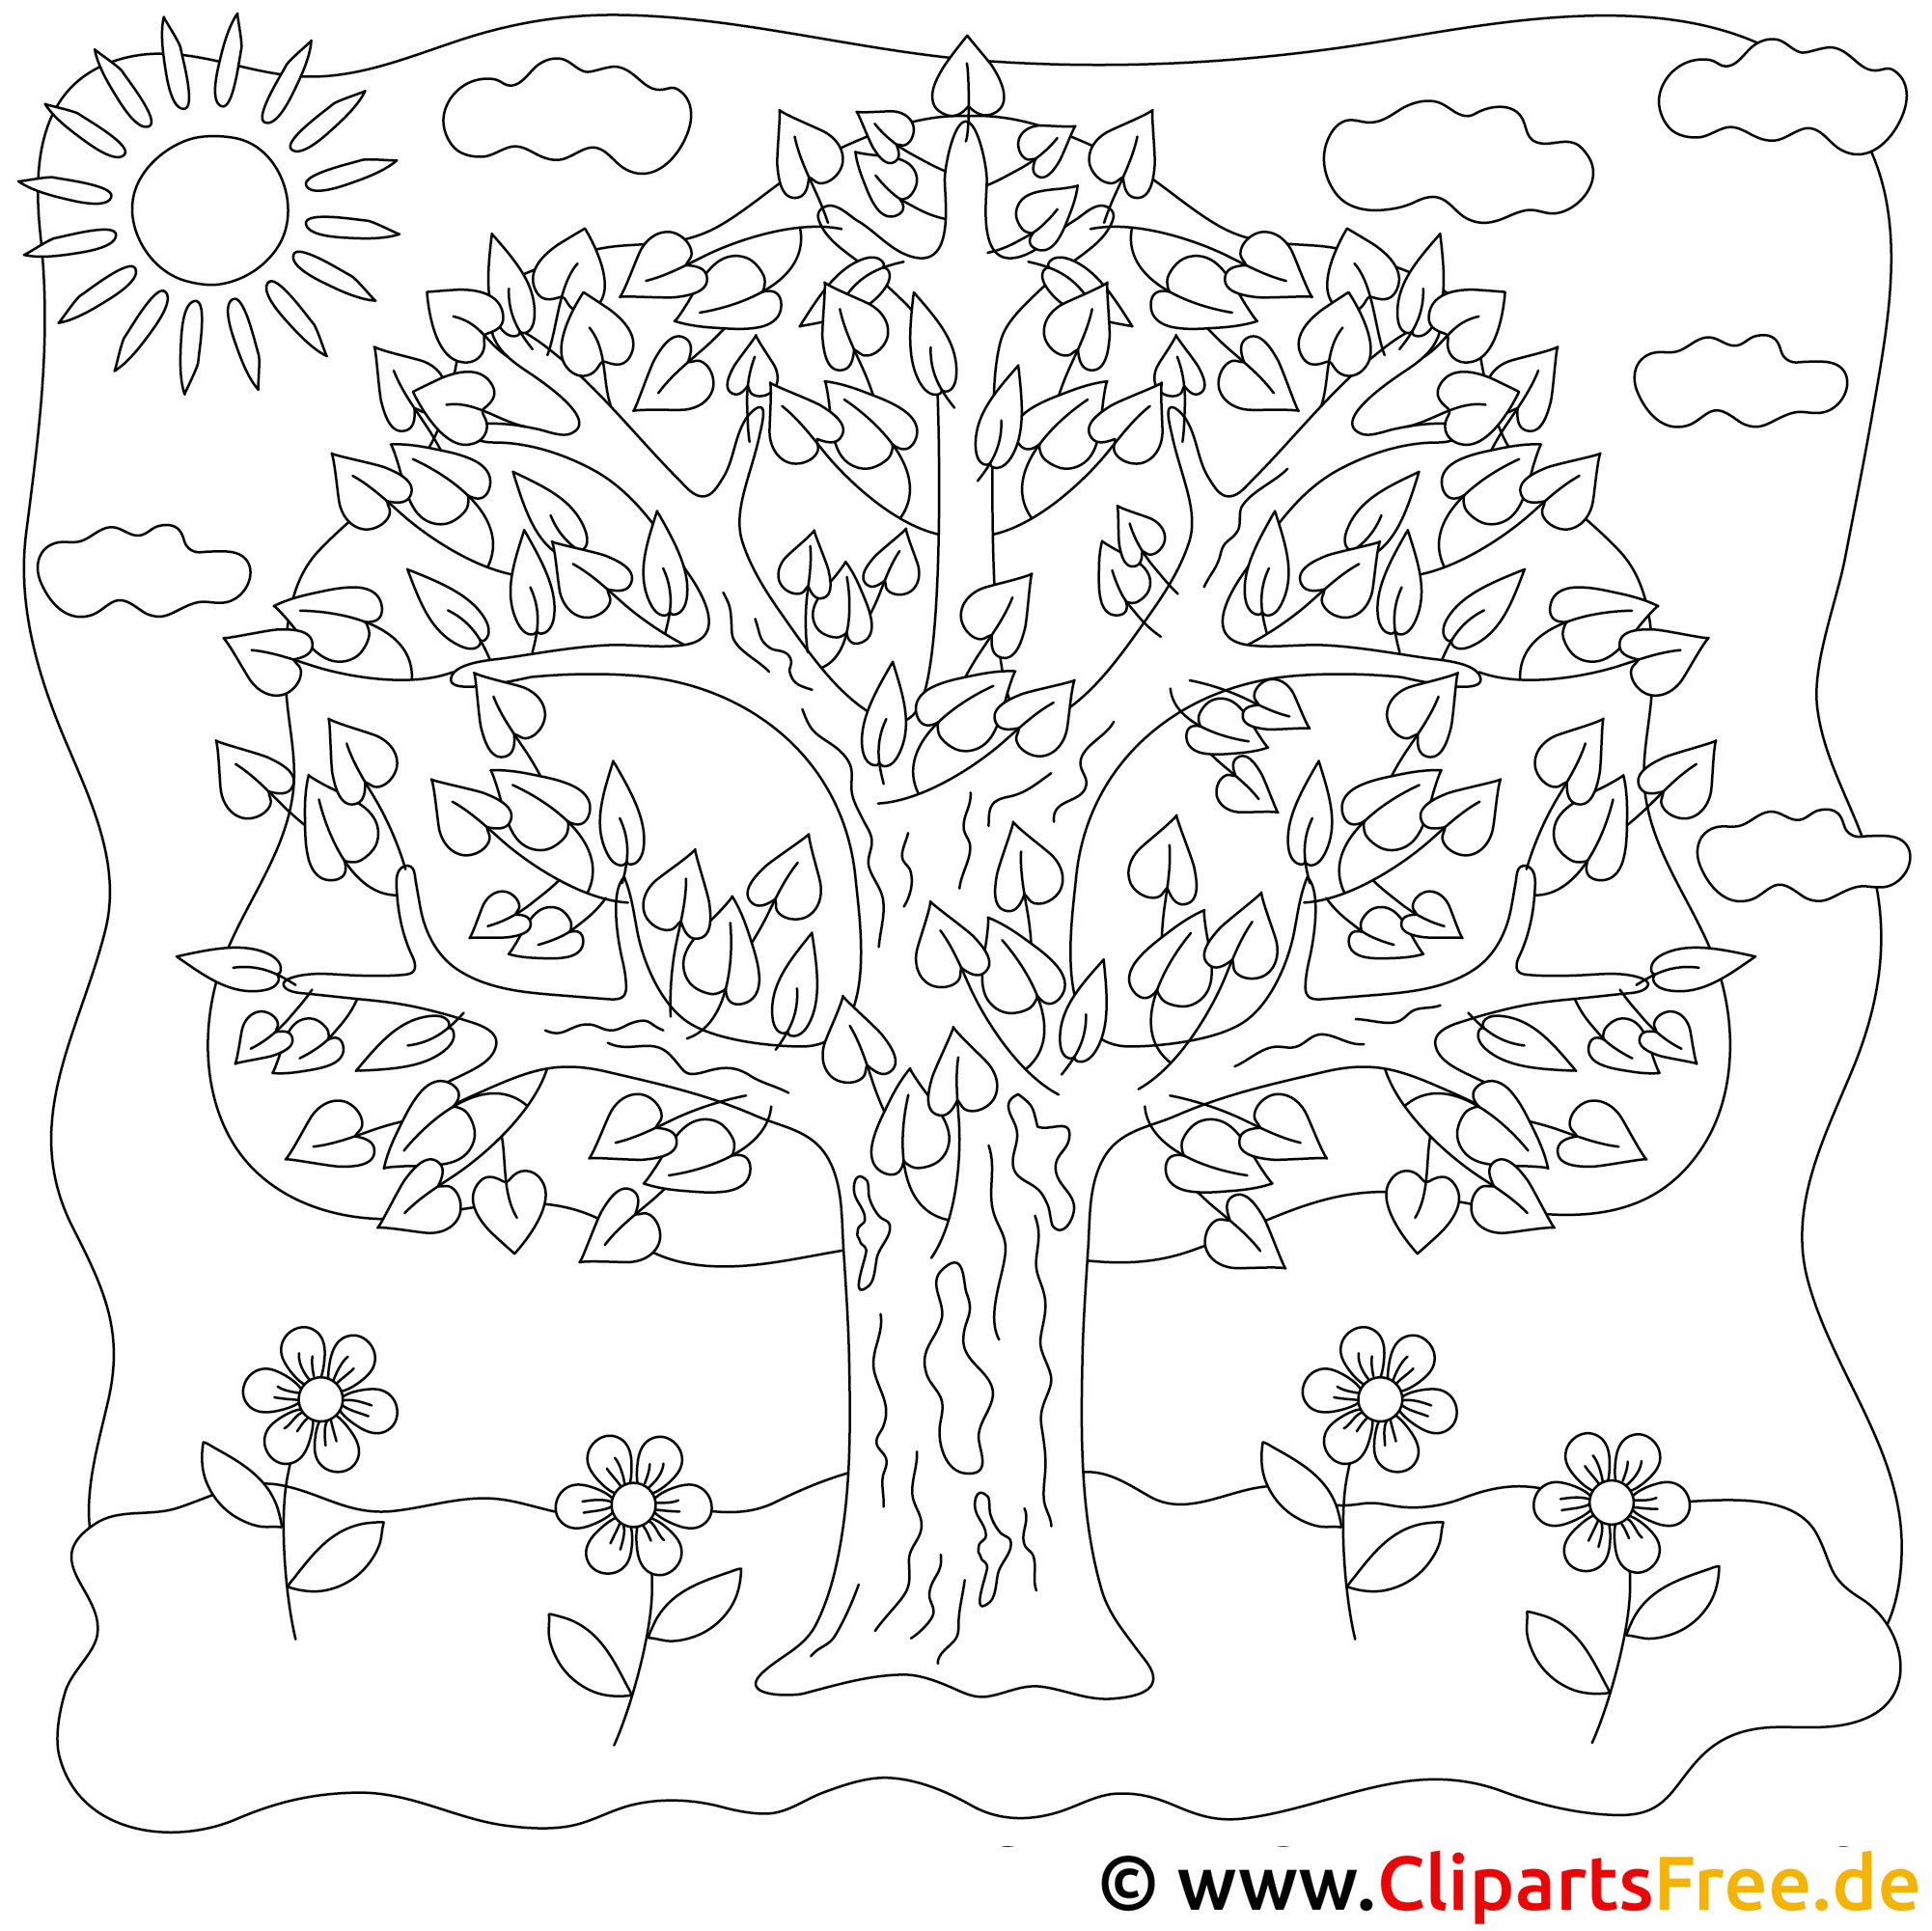 home design coloring pages html with Ausmalbild Baum 1400 on Junger Mann Tanzt Ausmalbild Zum Ausdrucken 5215 further Black Panther Drawing Marvel likewise Jurassic Park 3 Trex Spino Gags together with Butterfly Outline Coloring Pages as well More Angry Birds Movie Character Images.